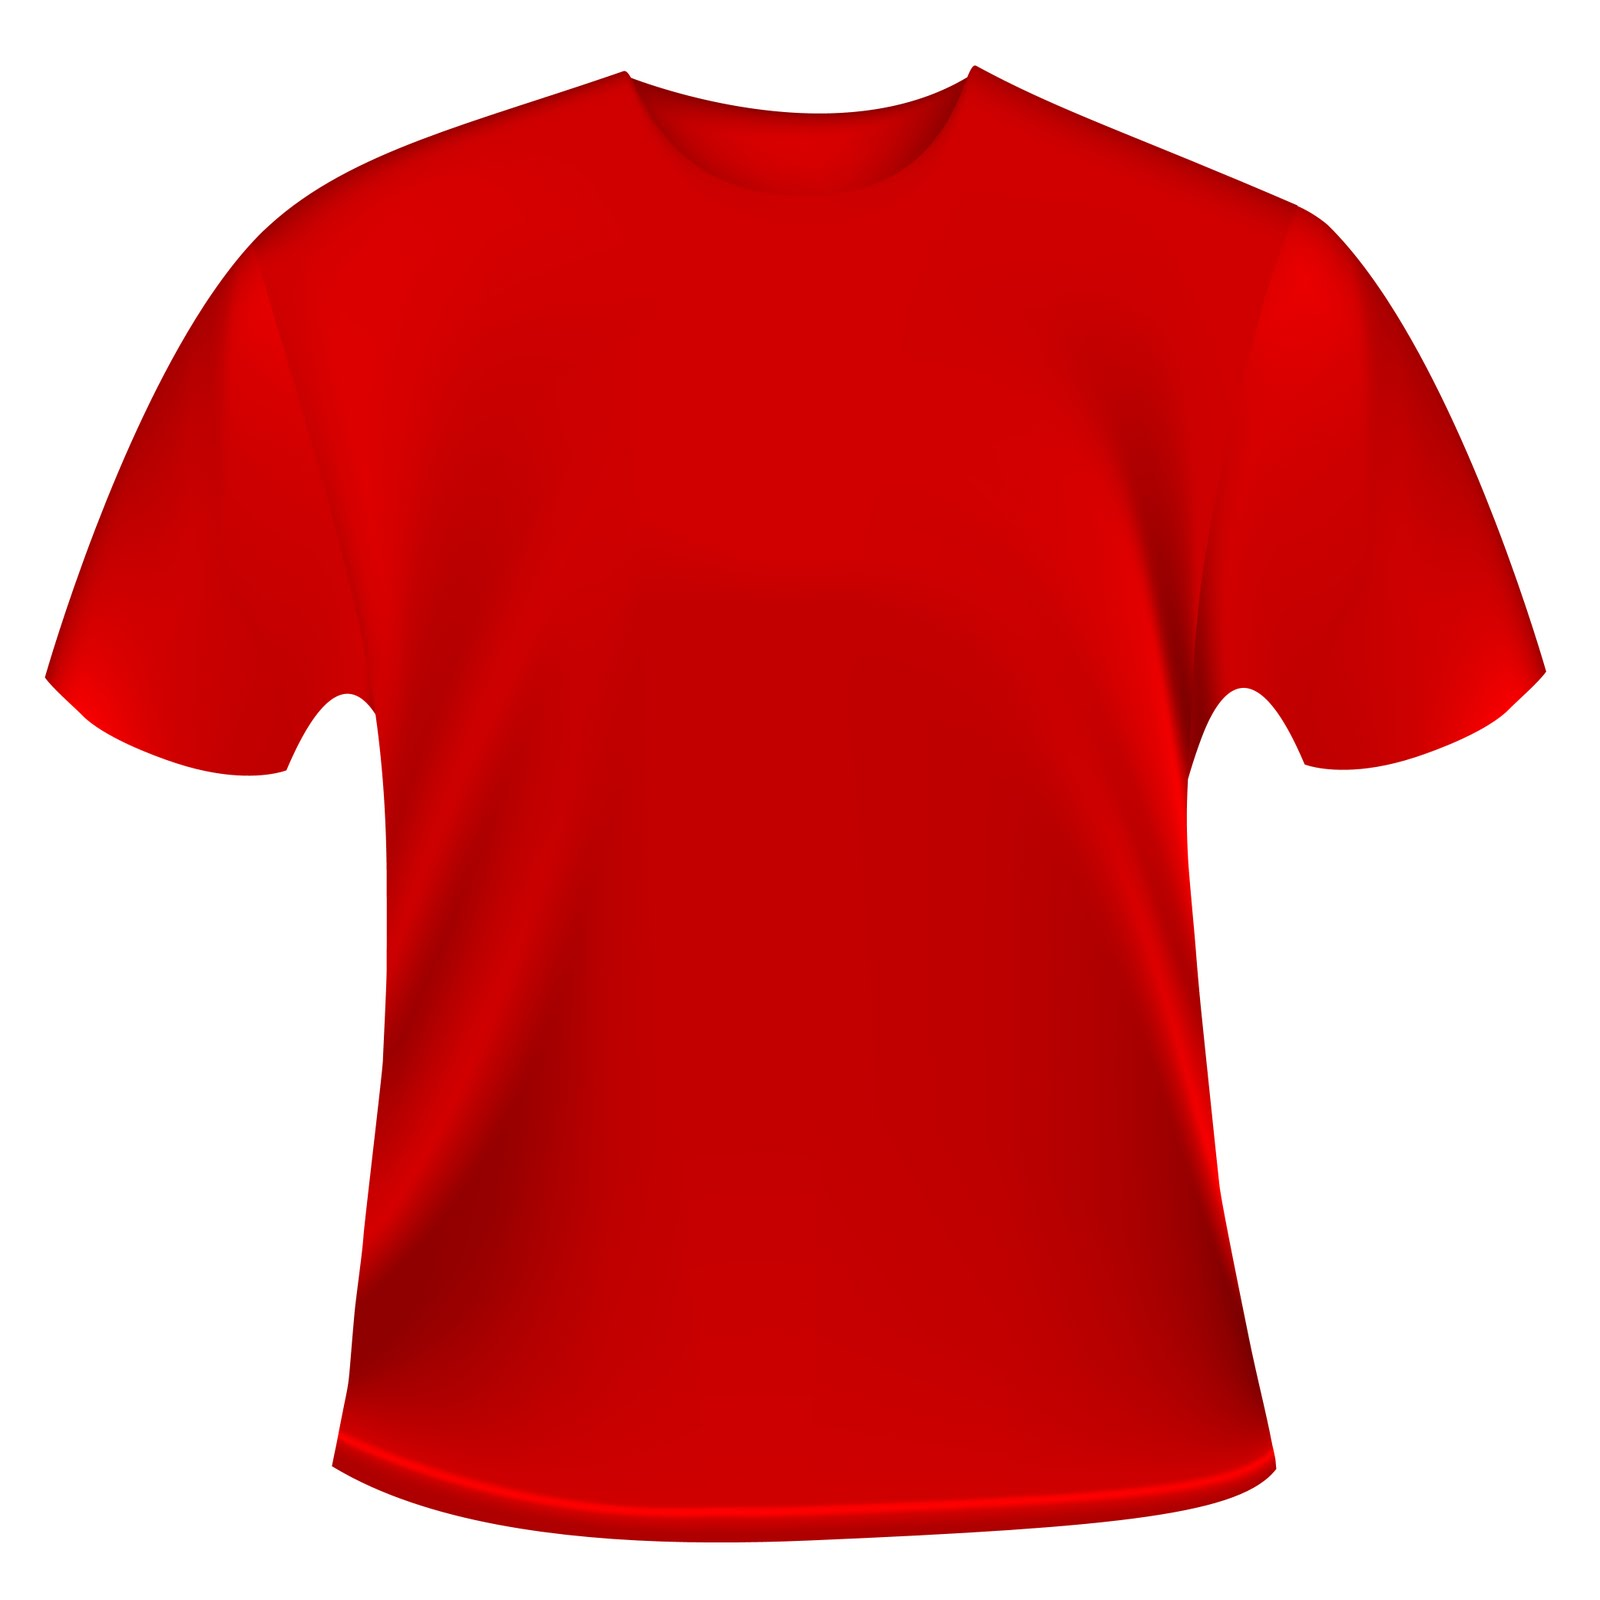 Plain Red T Shirt Template - ClipArt Best